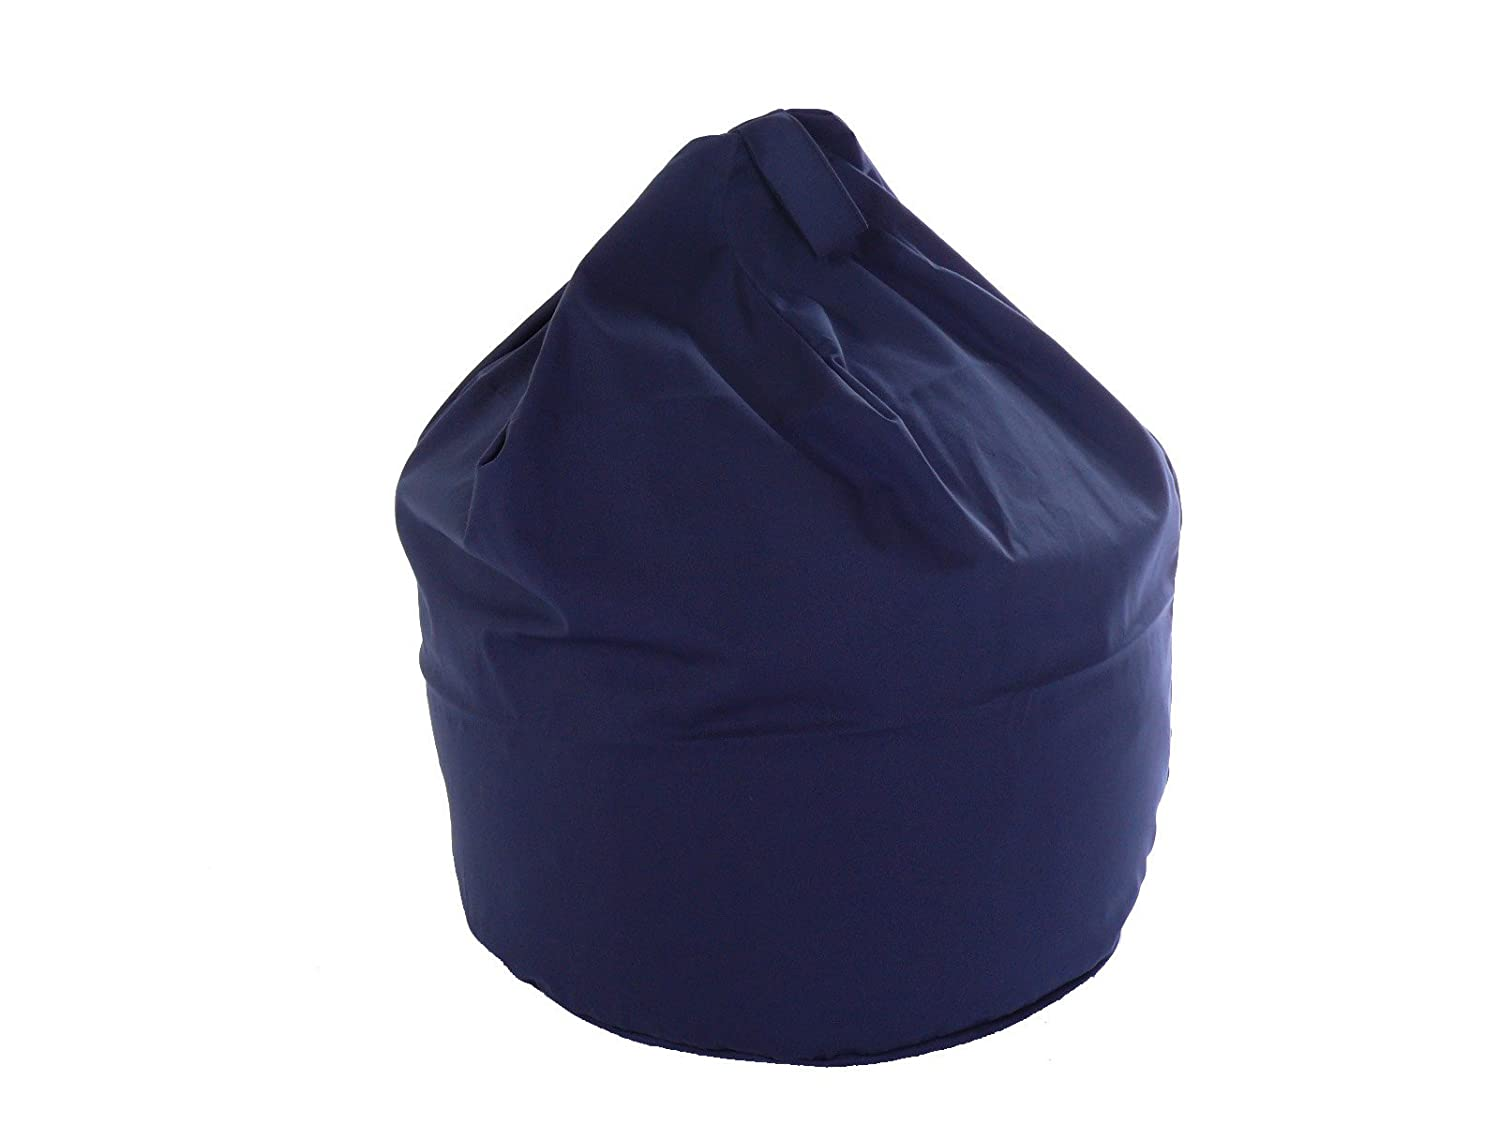 BeanLazy LARGE SIZE Cotton Drill Bean Bag Beans In Navy Blue